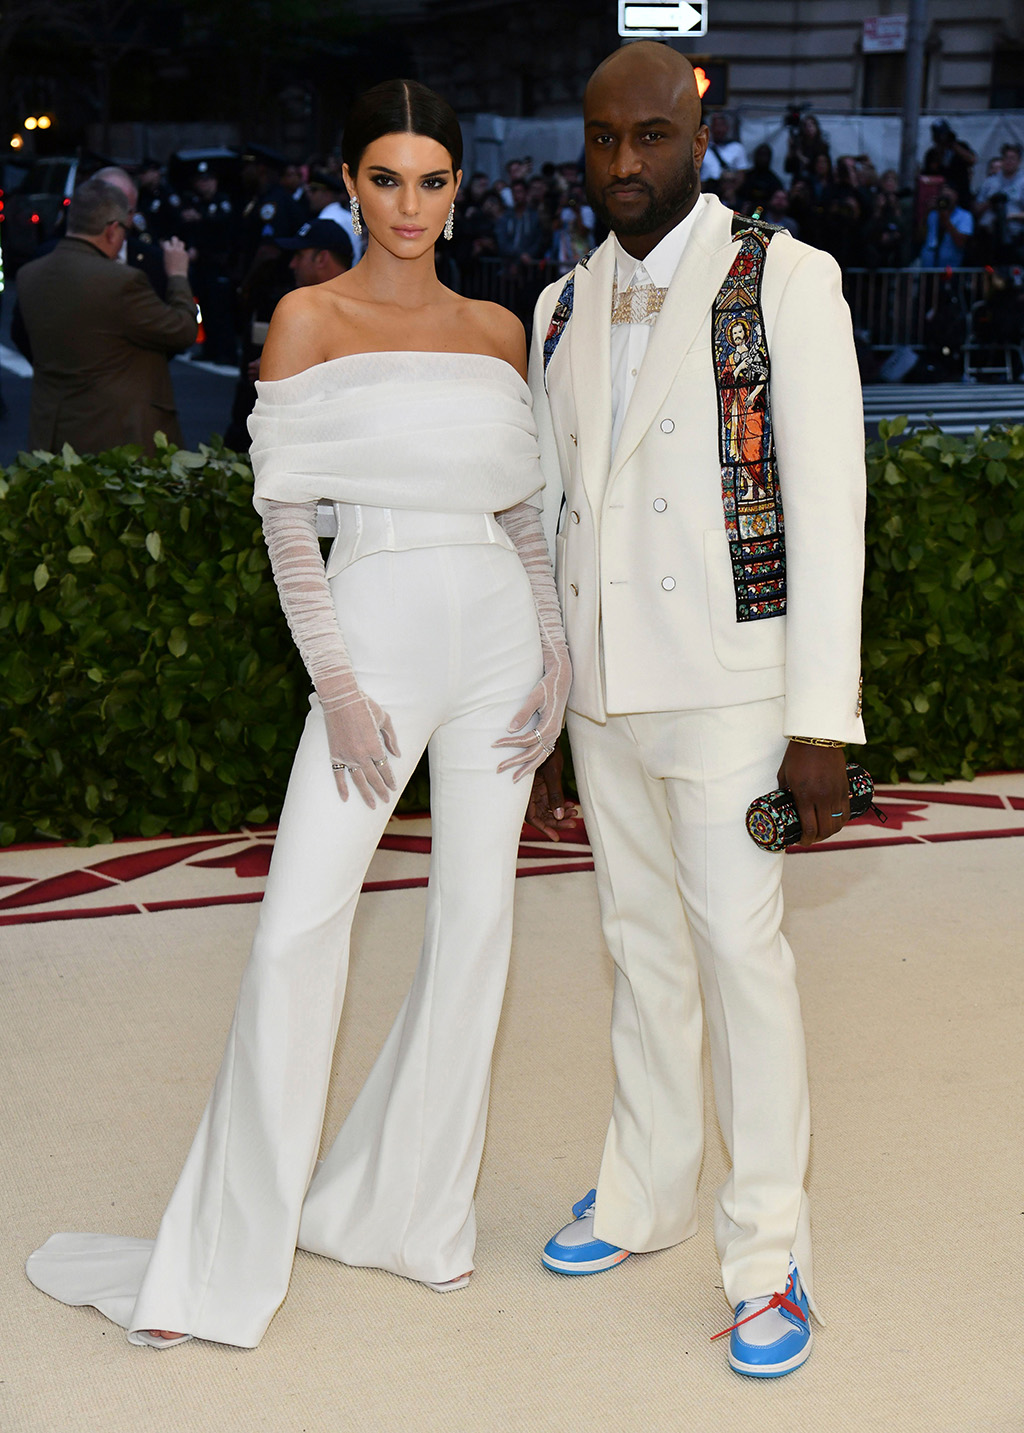 Kendall Jenner, Virgil Abloh. Kendall Jenner, left, and Virgil Abloh attend The Metropolitan Museum of Art's Costume Institute benefit gala celebrating the opening of the Heavenly Bodies: Fashion and the Catholic Imagination exhibition, in New York2018 MET Museum Costume Institute Benefit Gala, New York, USA - 07 May 2018